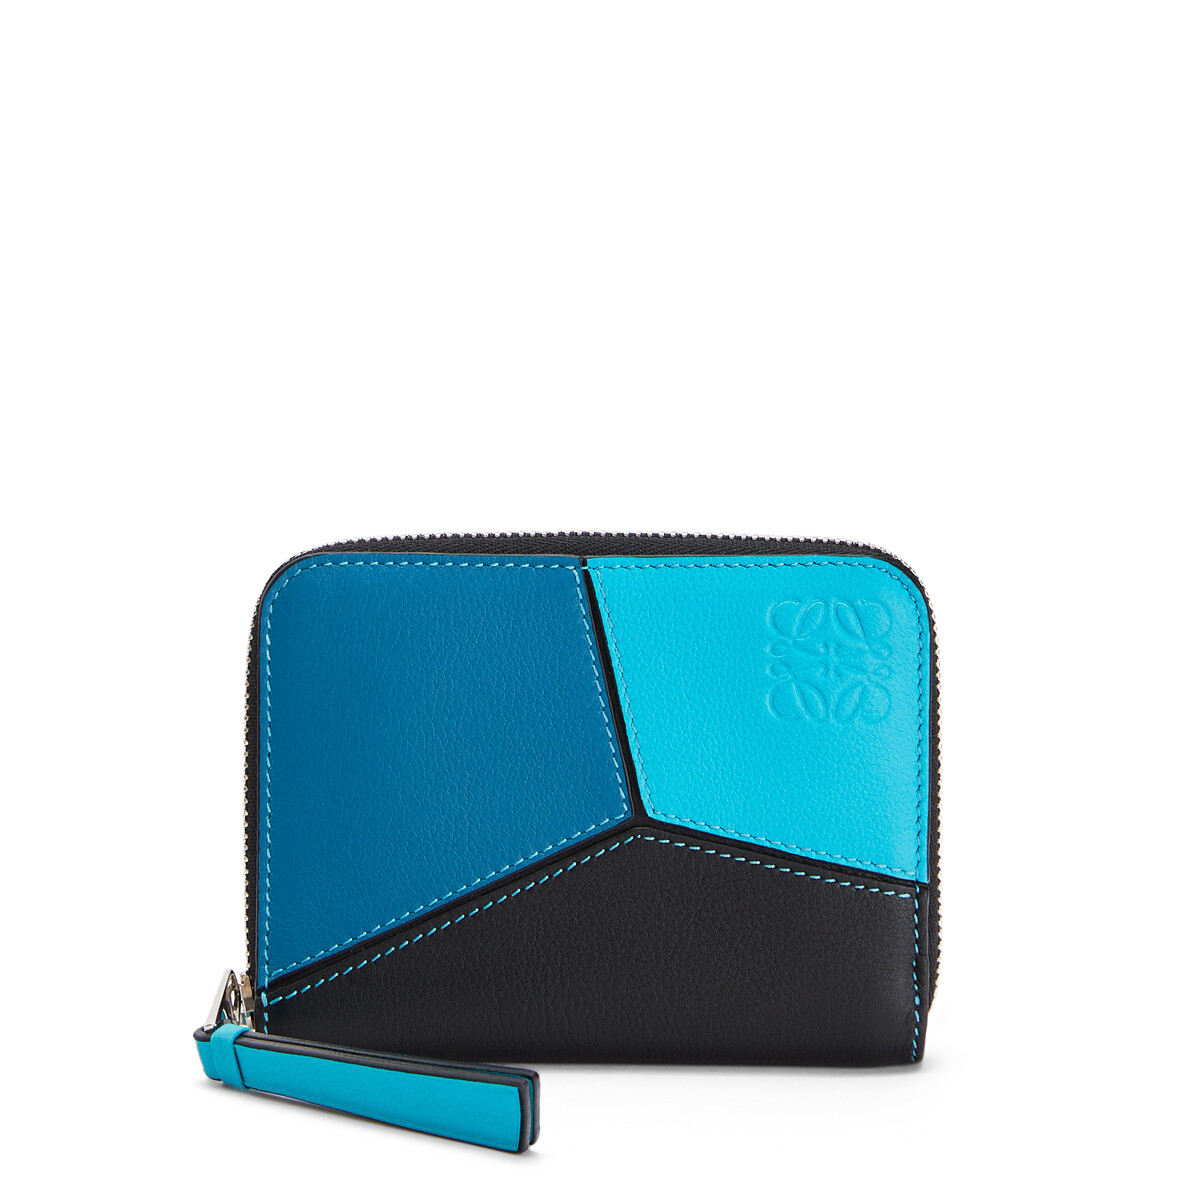 LOEWE Puzzle 6 Card Zip Wallet Dark Lagoon/Black front